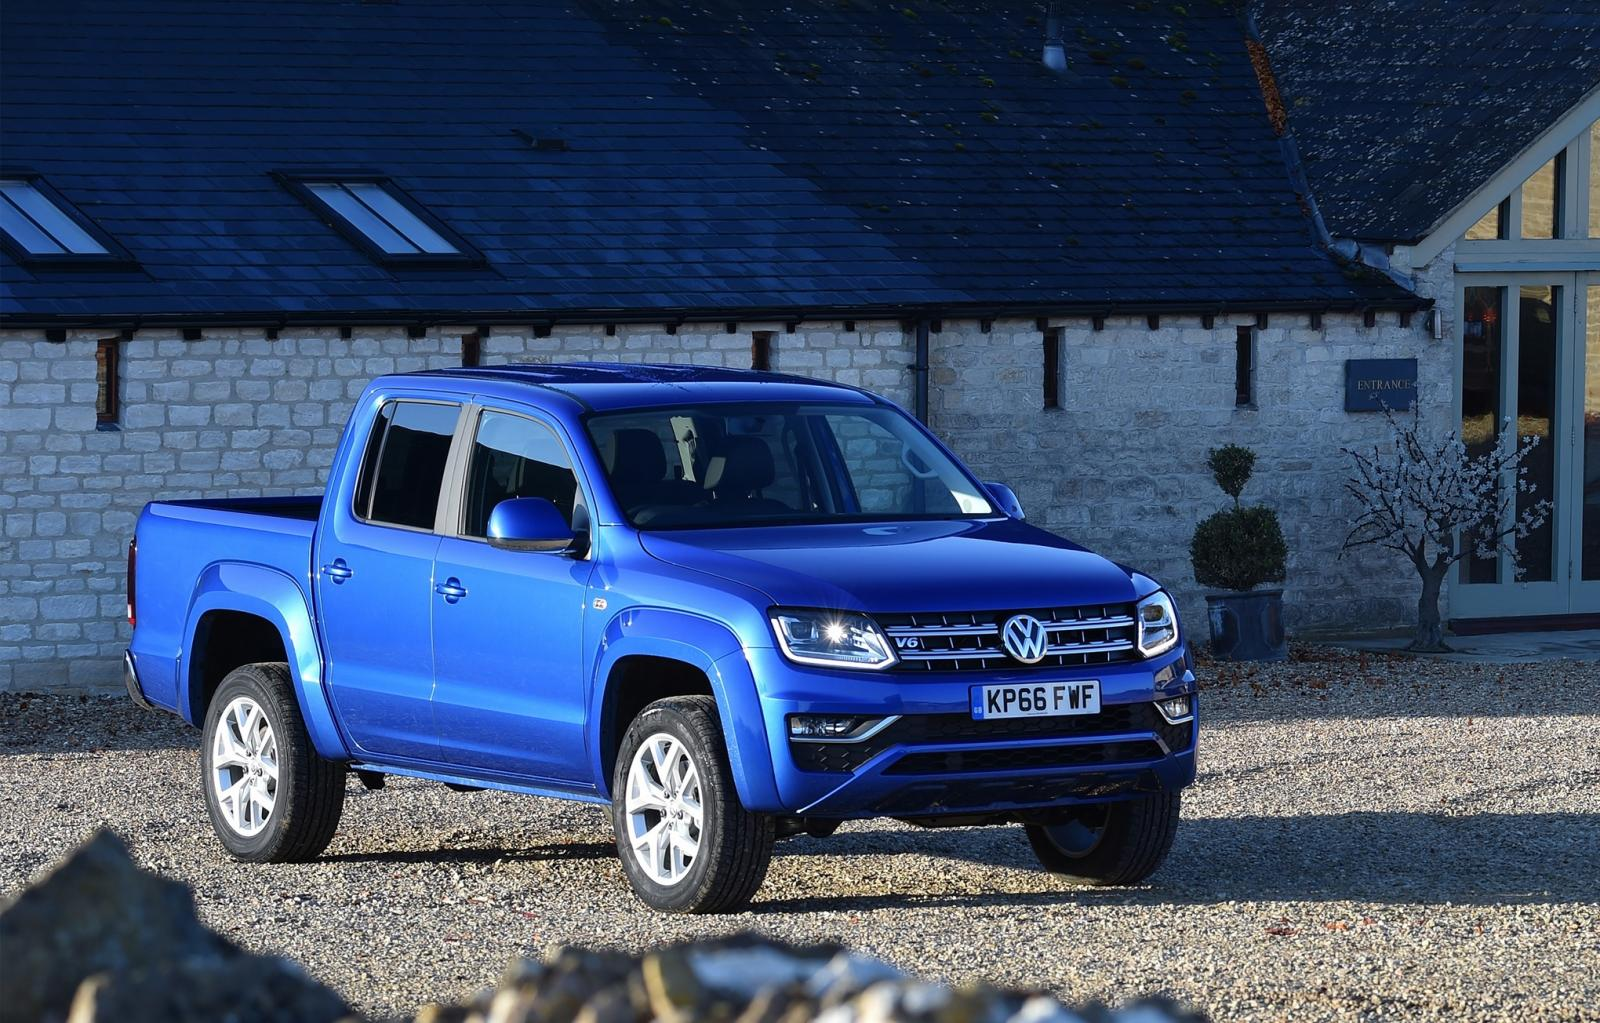 vw amarok 3 0 v6 tdi 5 things we 39 ve learnt. Black Bedroom Furniture Sets. Home Design Ideas